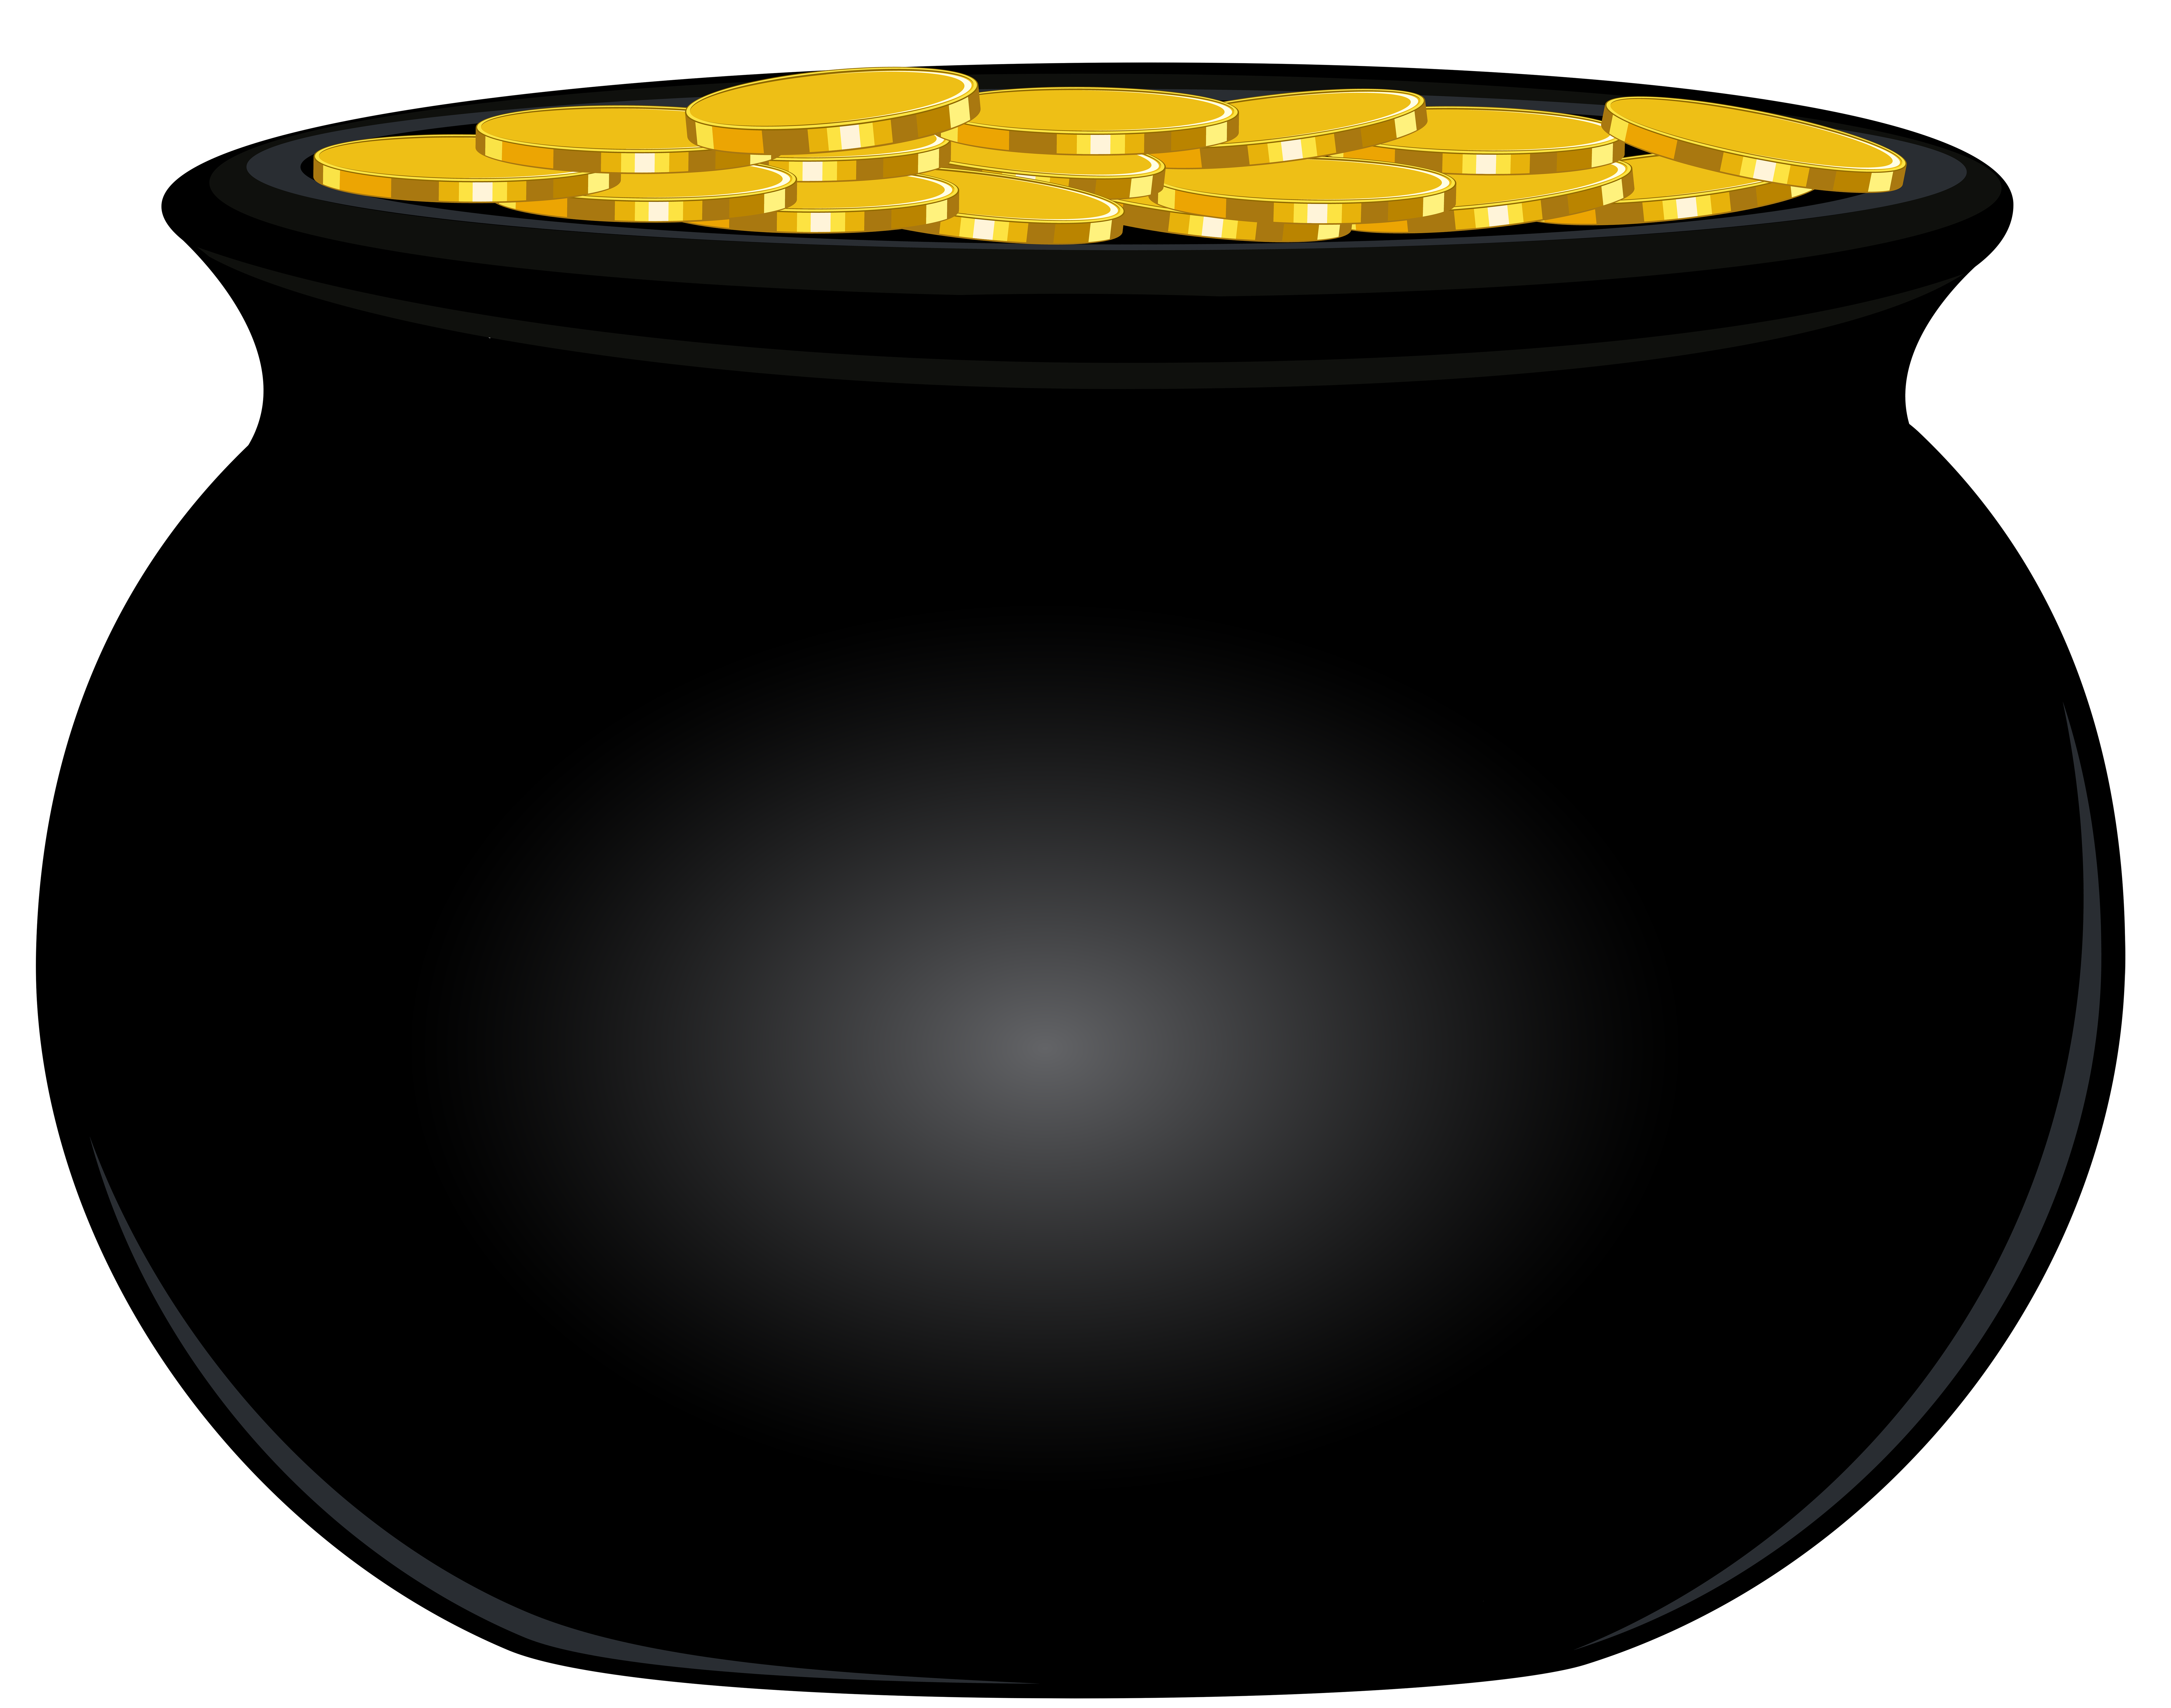 Image of pot google. Coin clipart empty gold